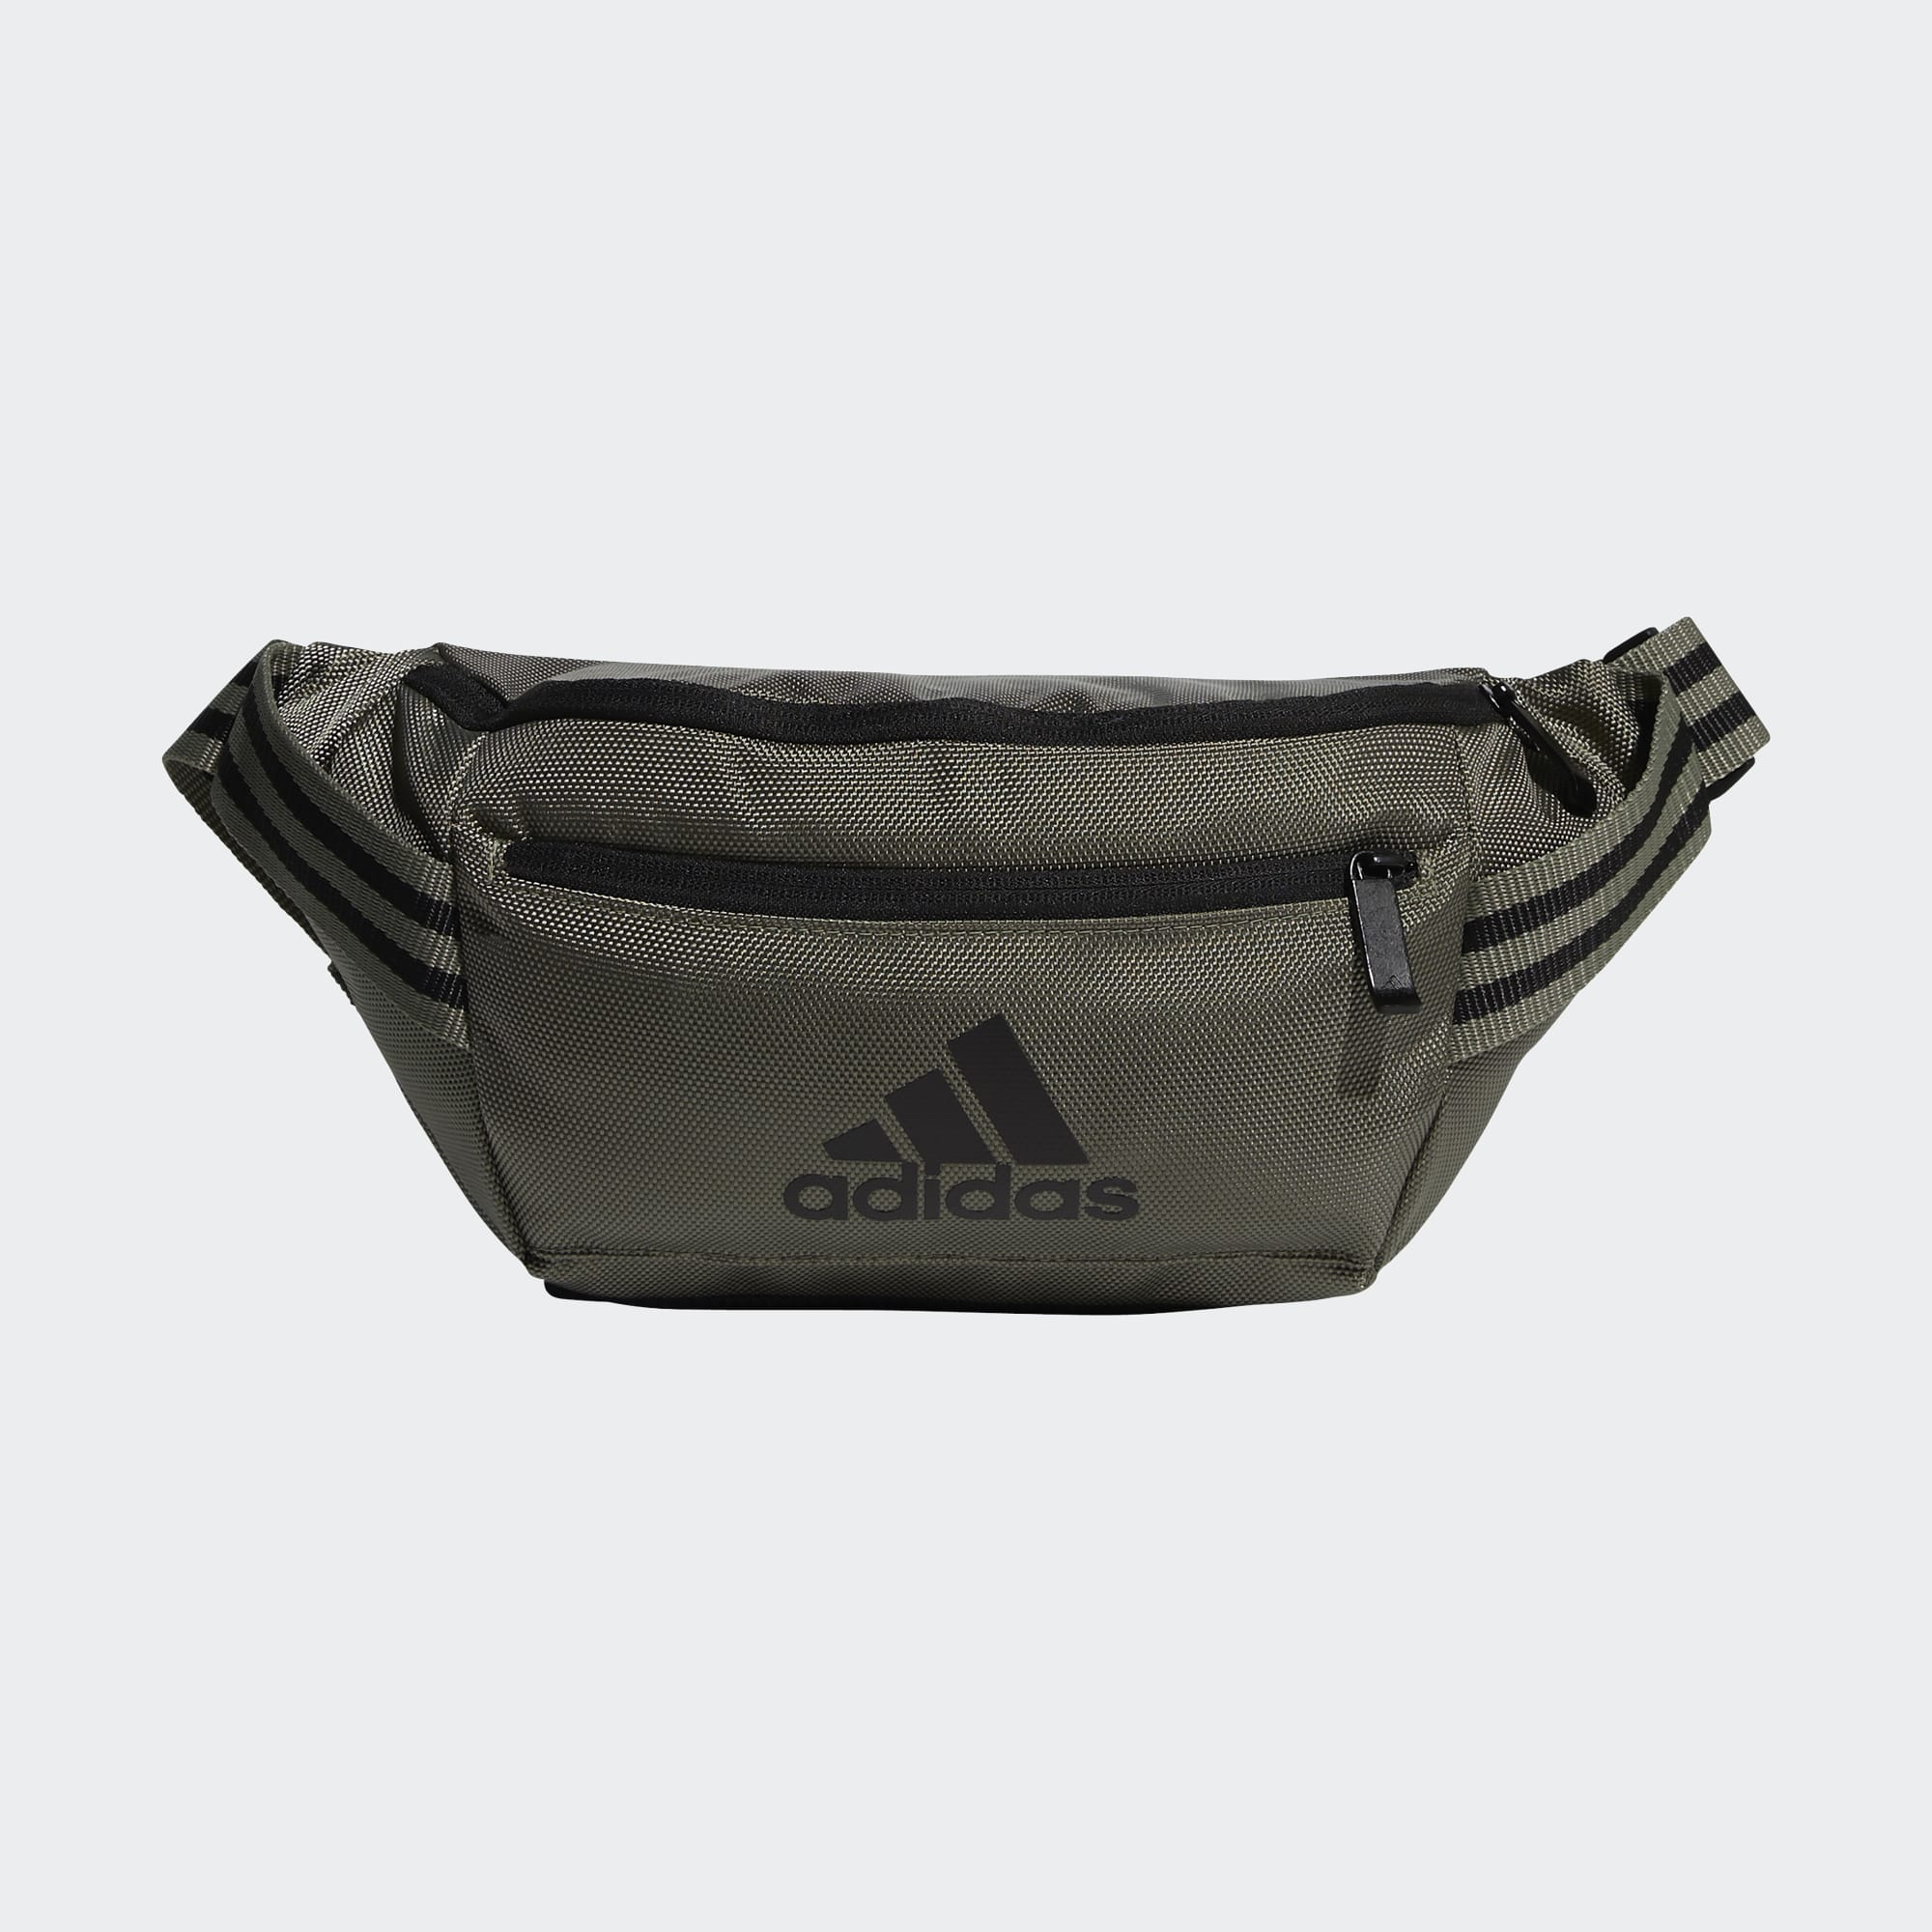 Adidas Classic Badge of Sport Bauchtasche